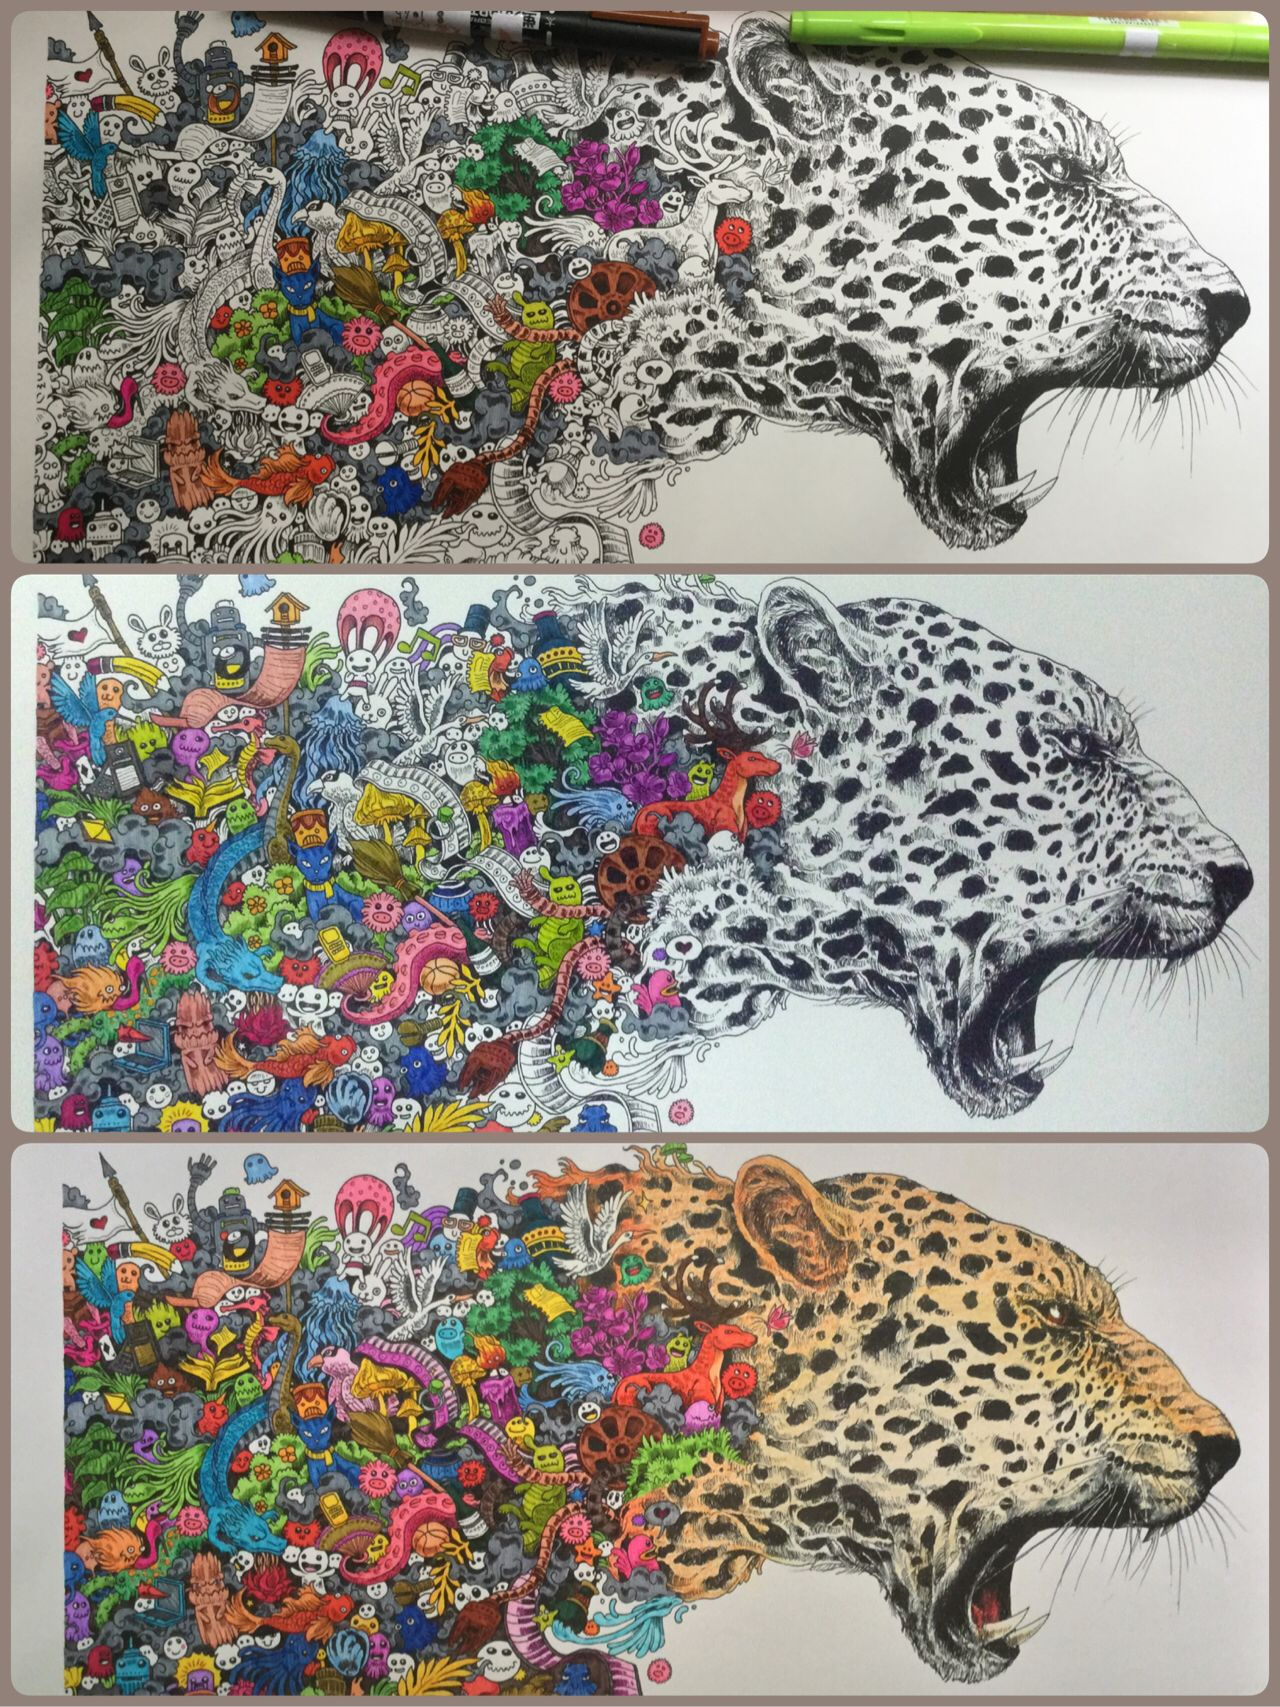 Cheetah from Animorphia coloring book, illustrated by Kerby Rosanes ...